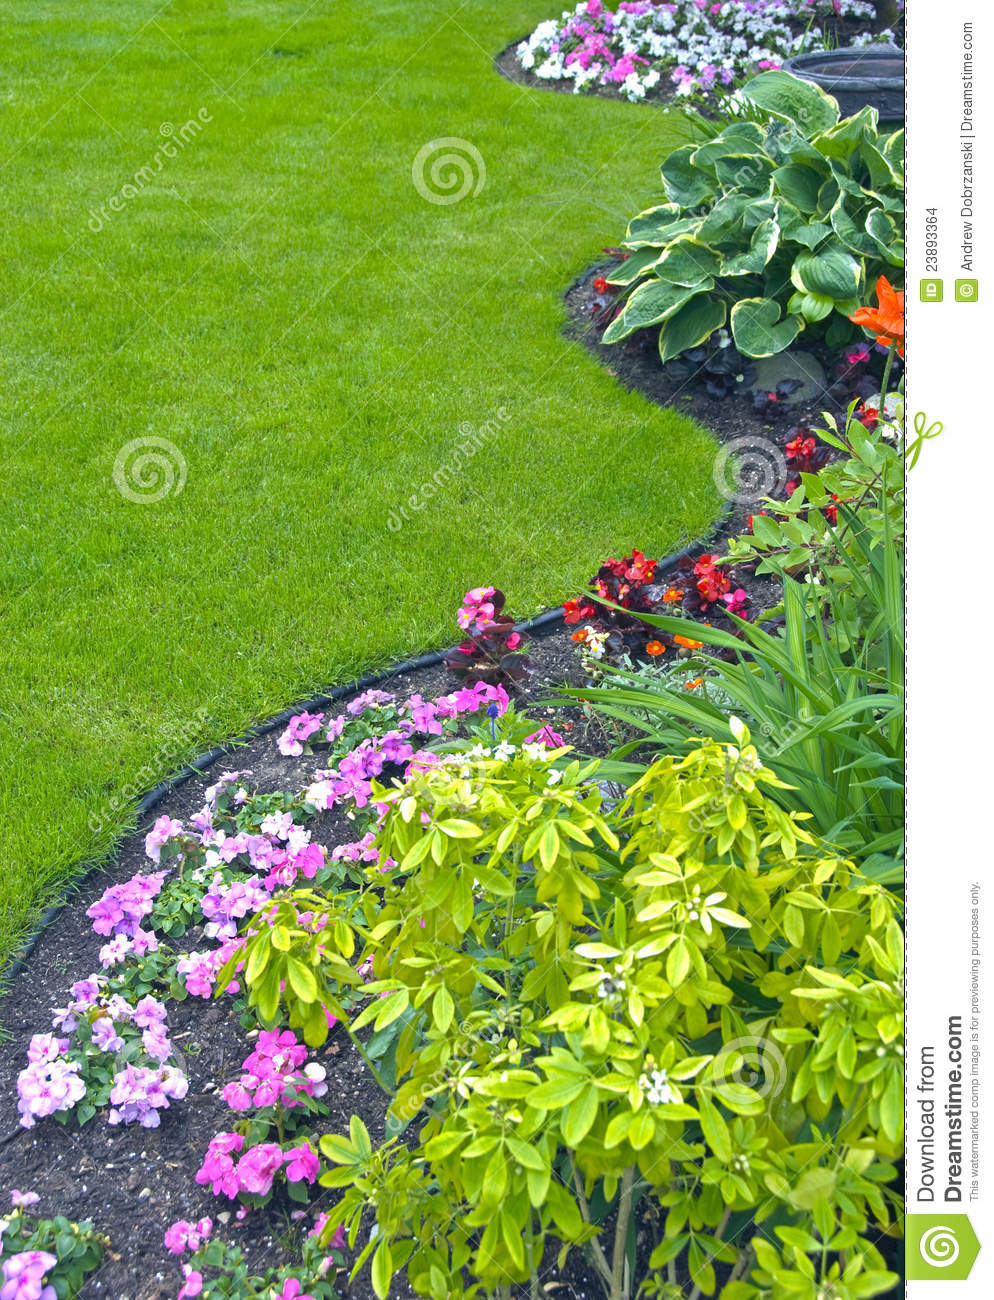 Marvelous Landscaped Yard And Garden